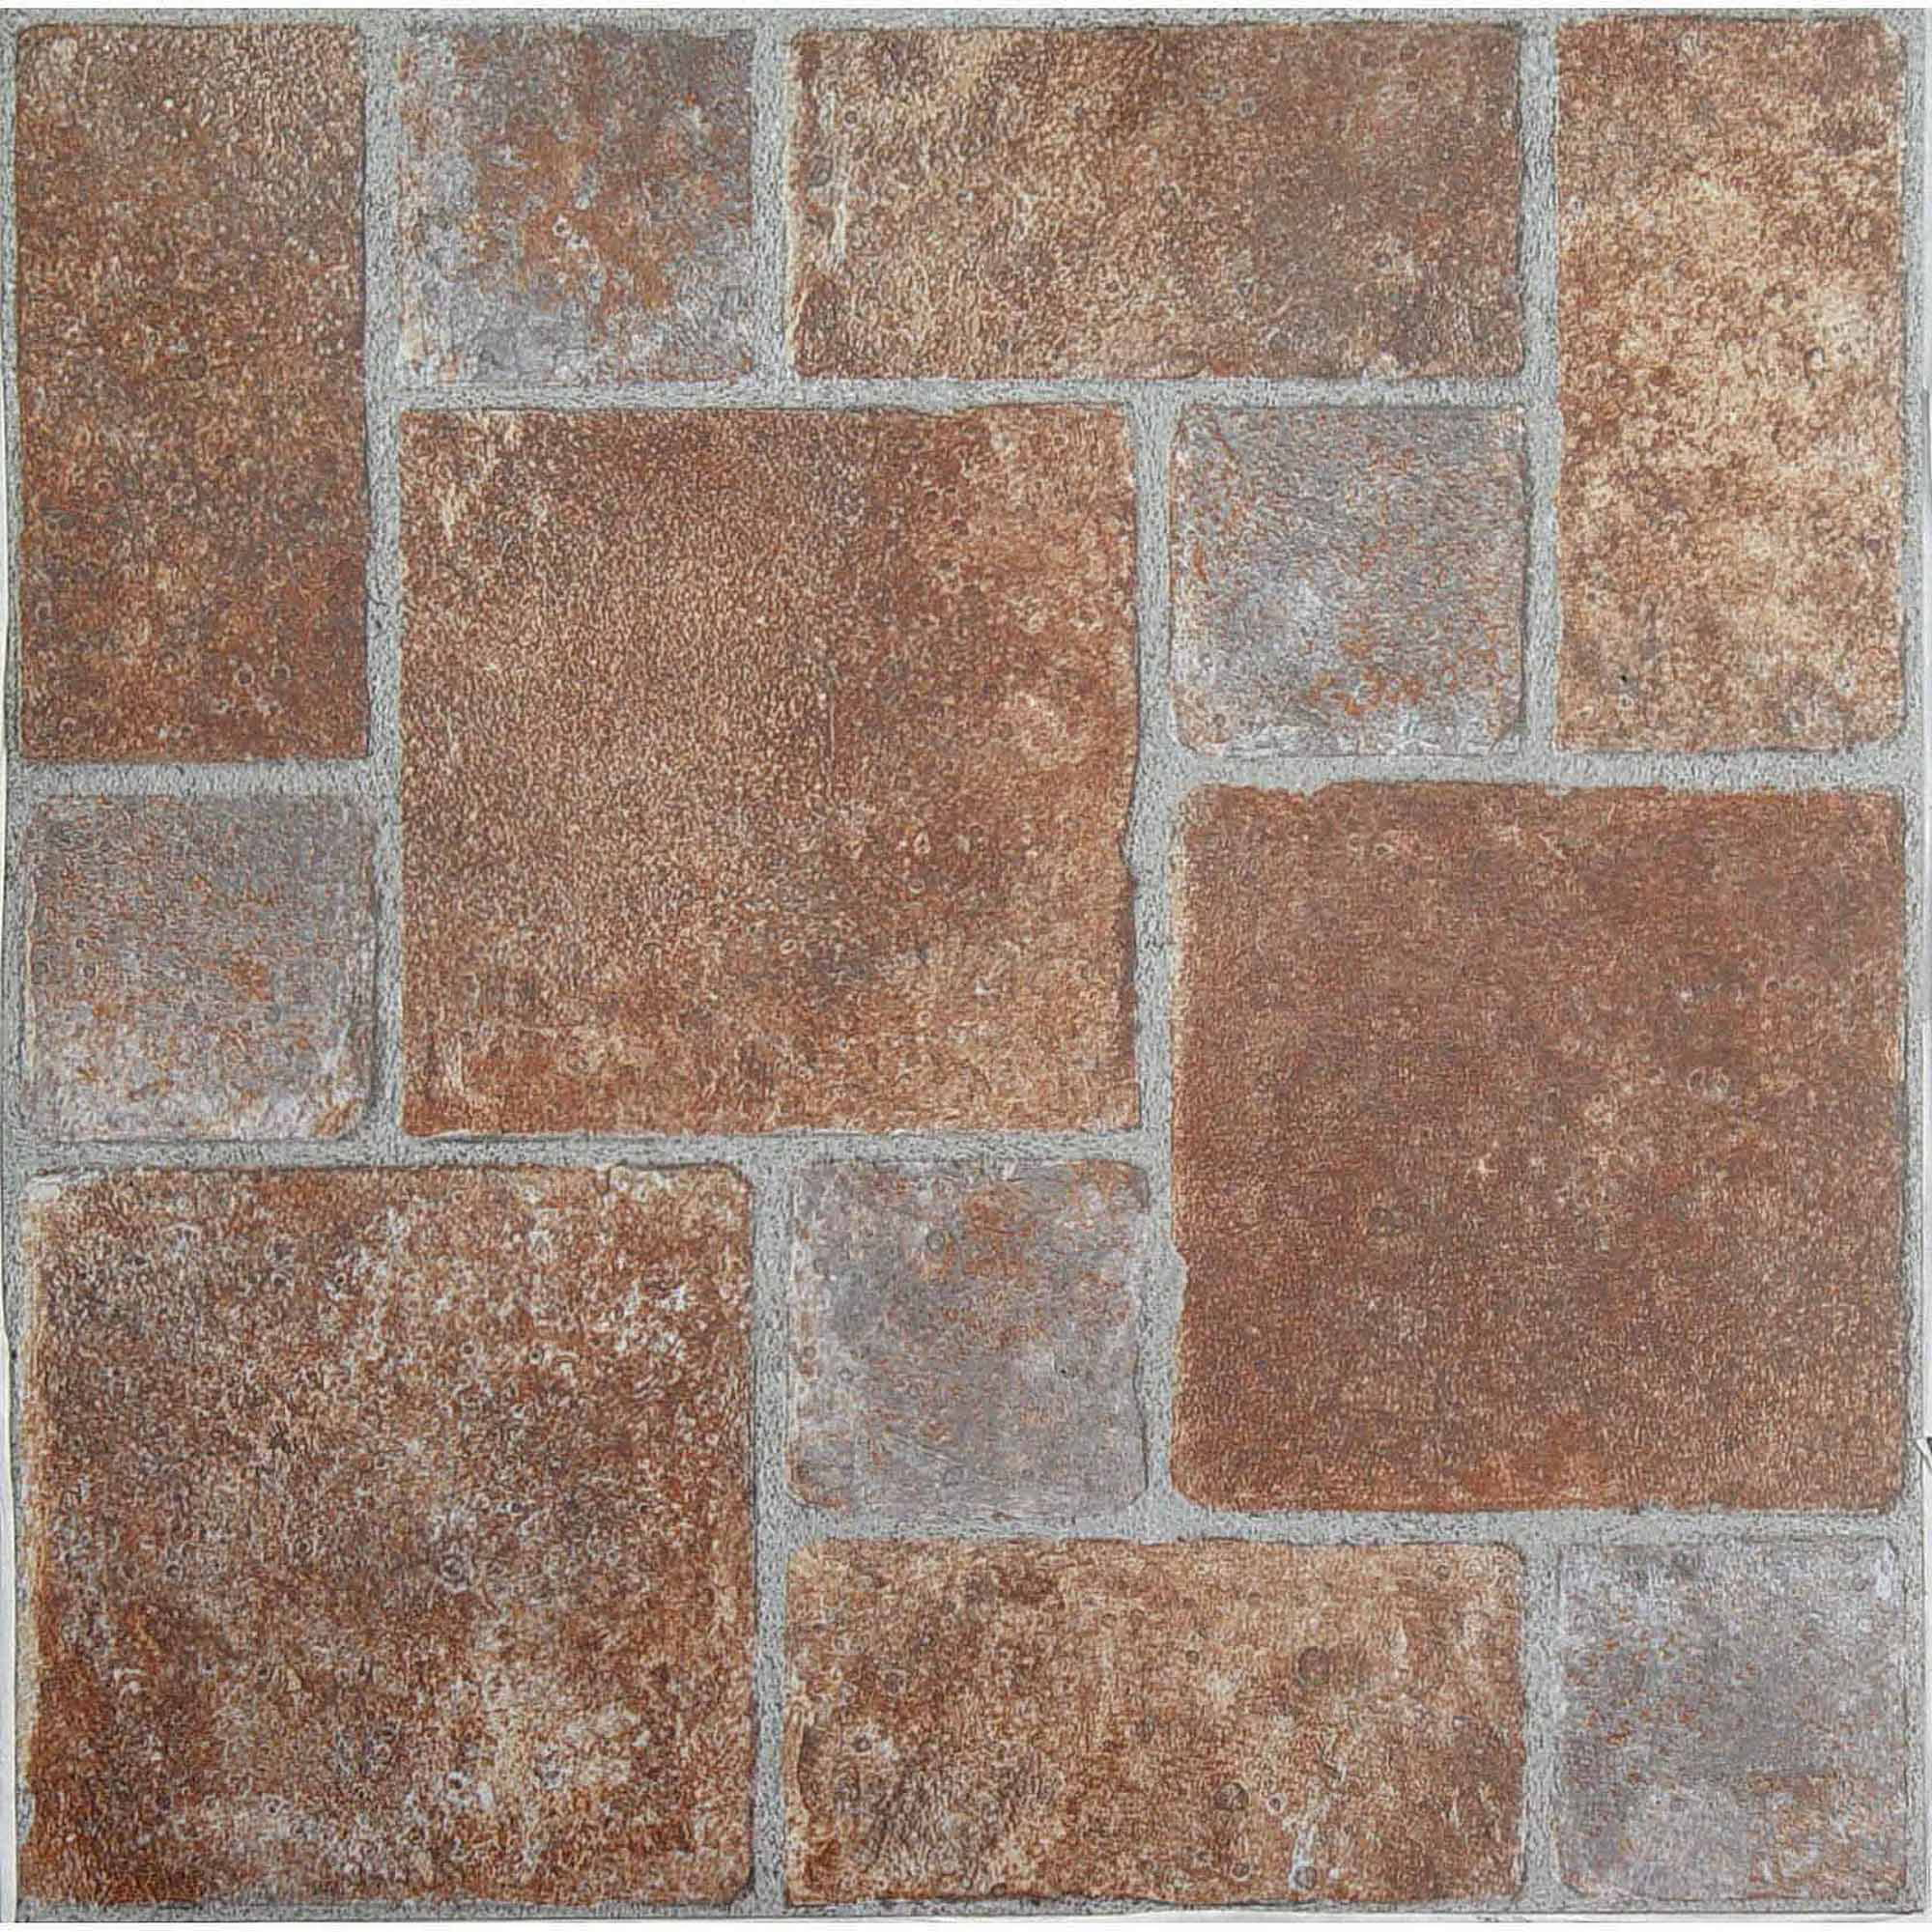 Nexus Brick Pavers 12x12 Self Adhesive Vinyl Floor Tile 20 Tiles Sq Ft